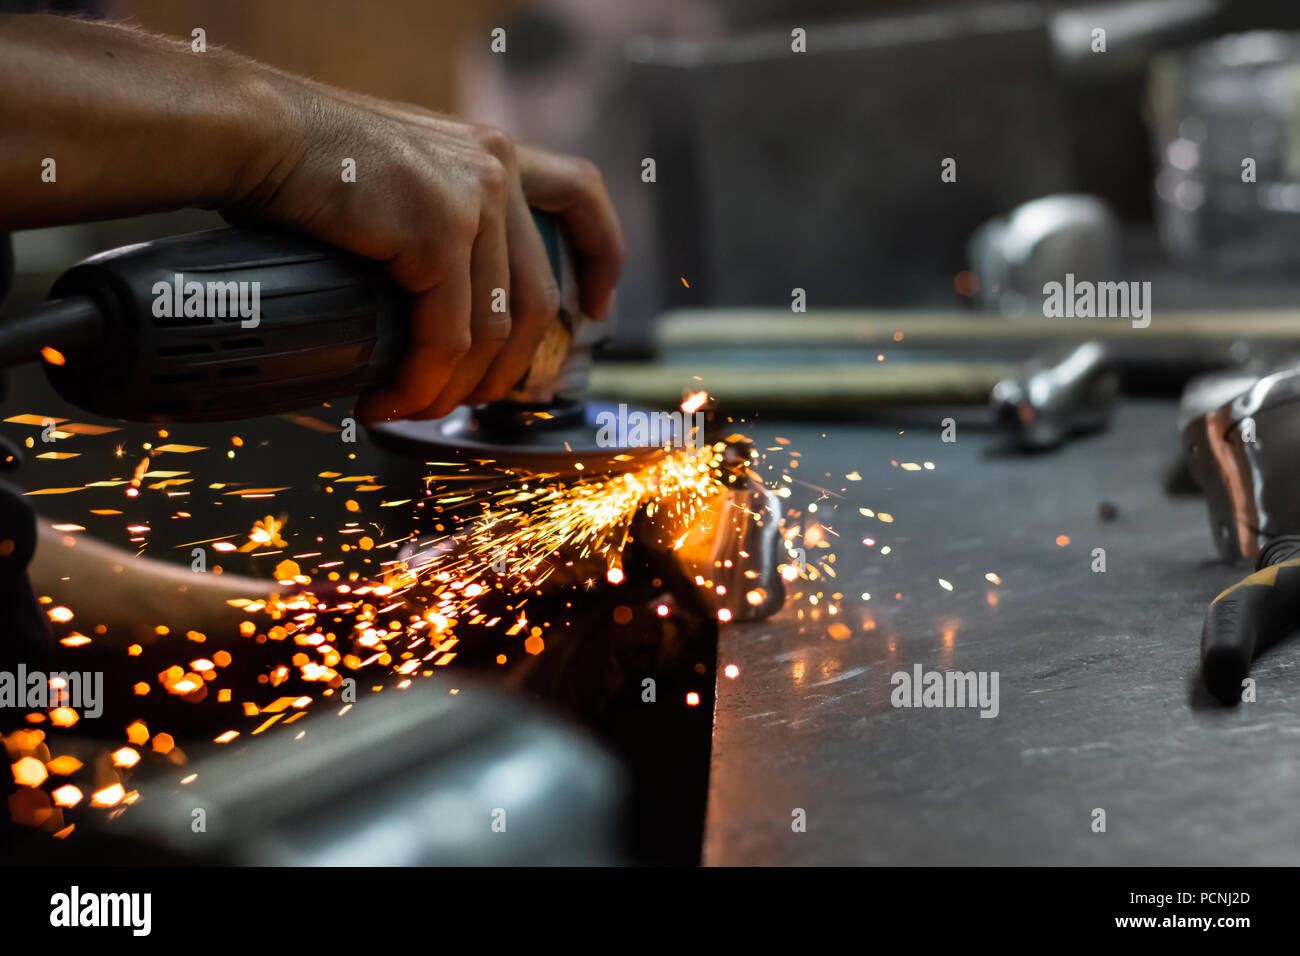 Man hands treating metal parts of hardware in a workshop with angle grinder. Male metal worker polishing and finalising piece of medieval armour suit. - Stock Image